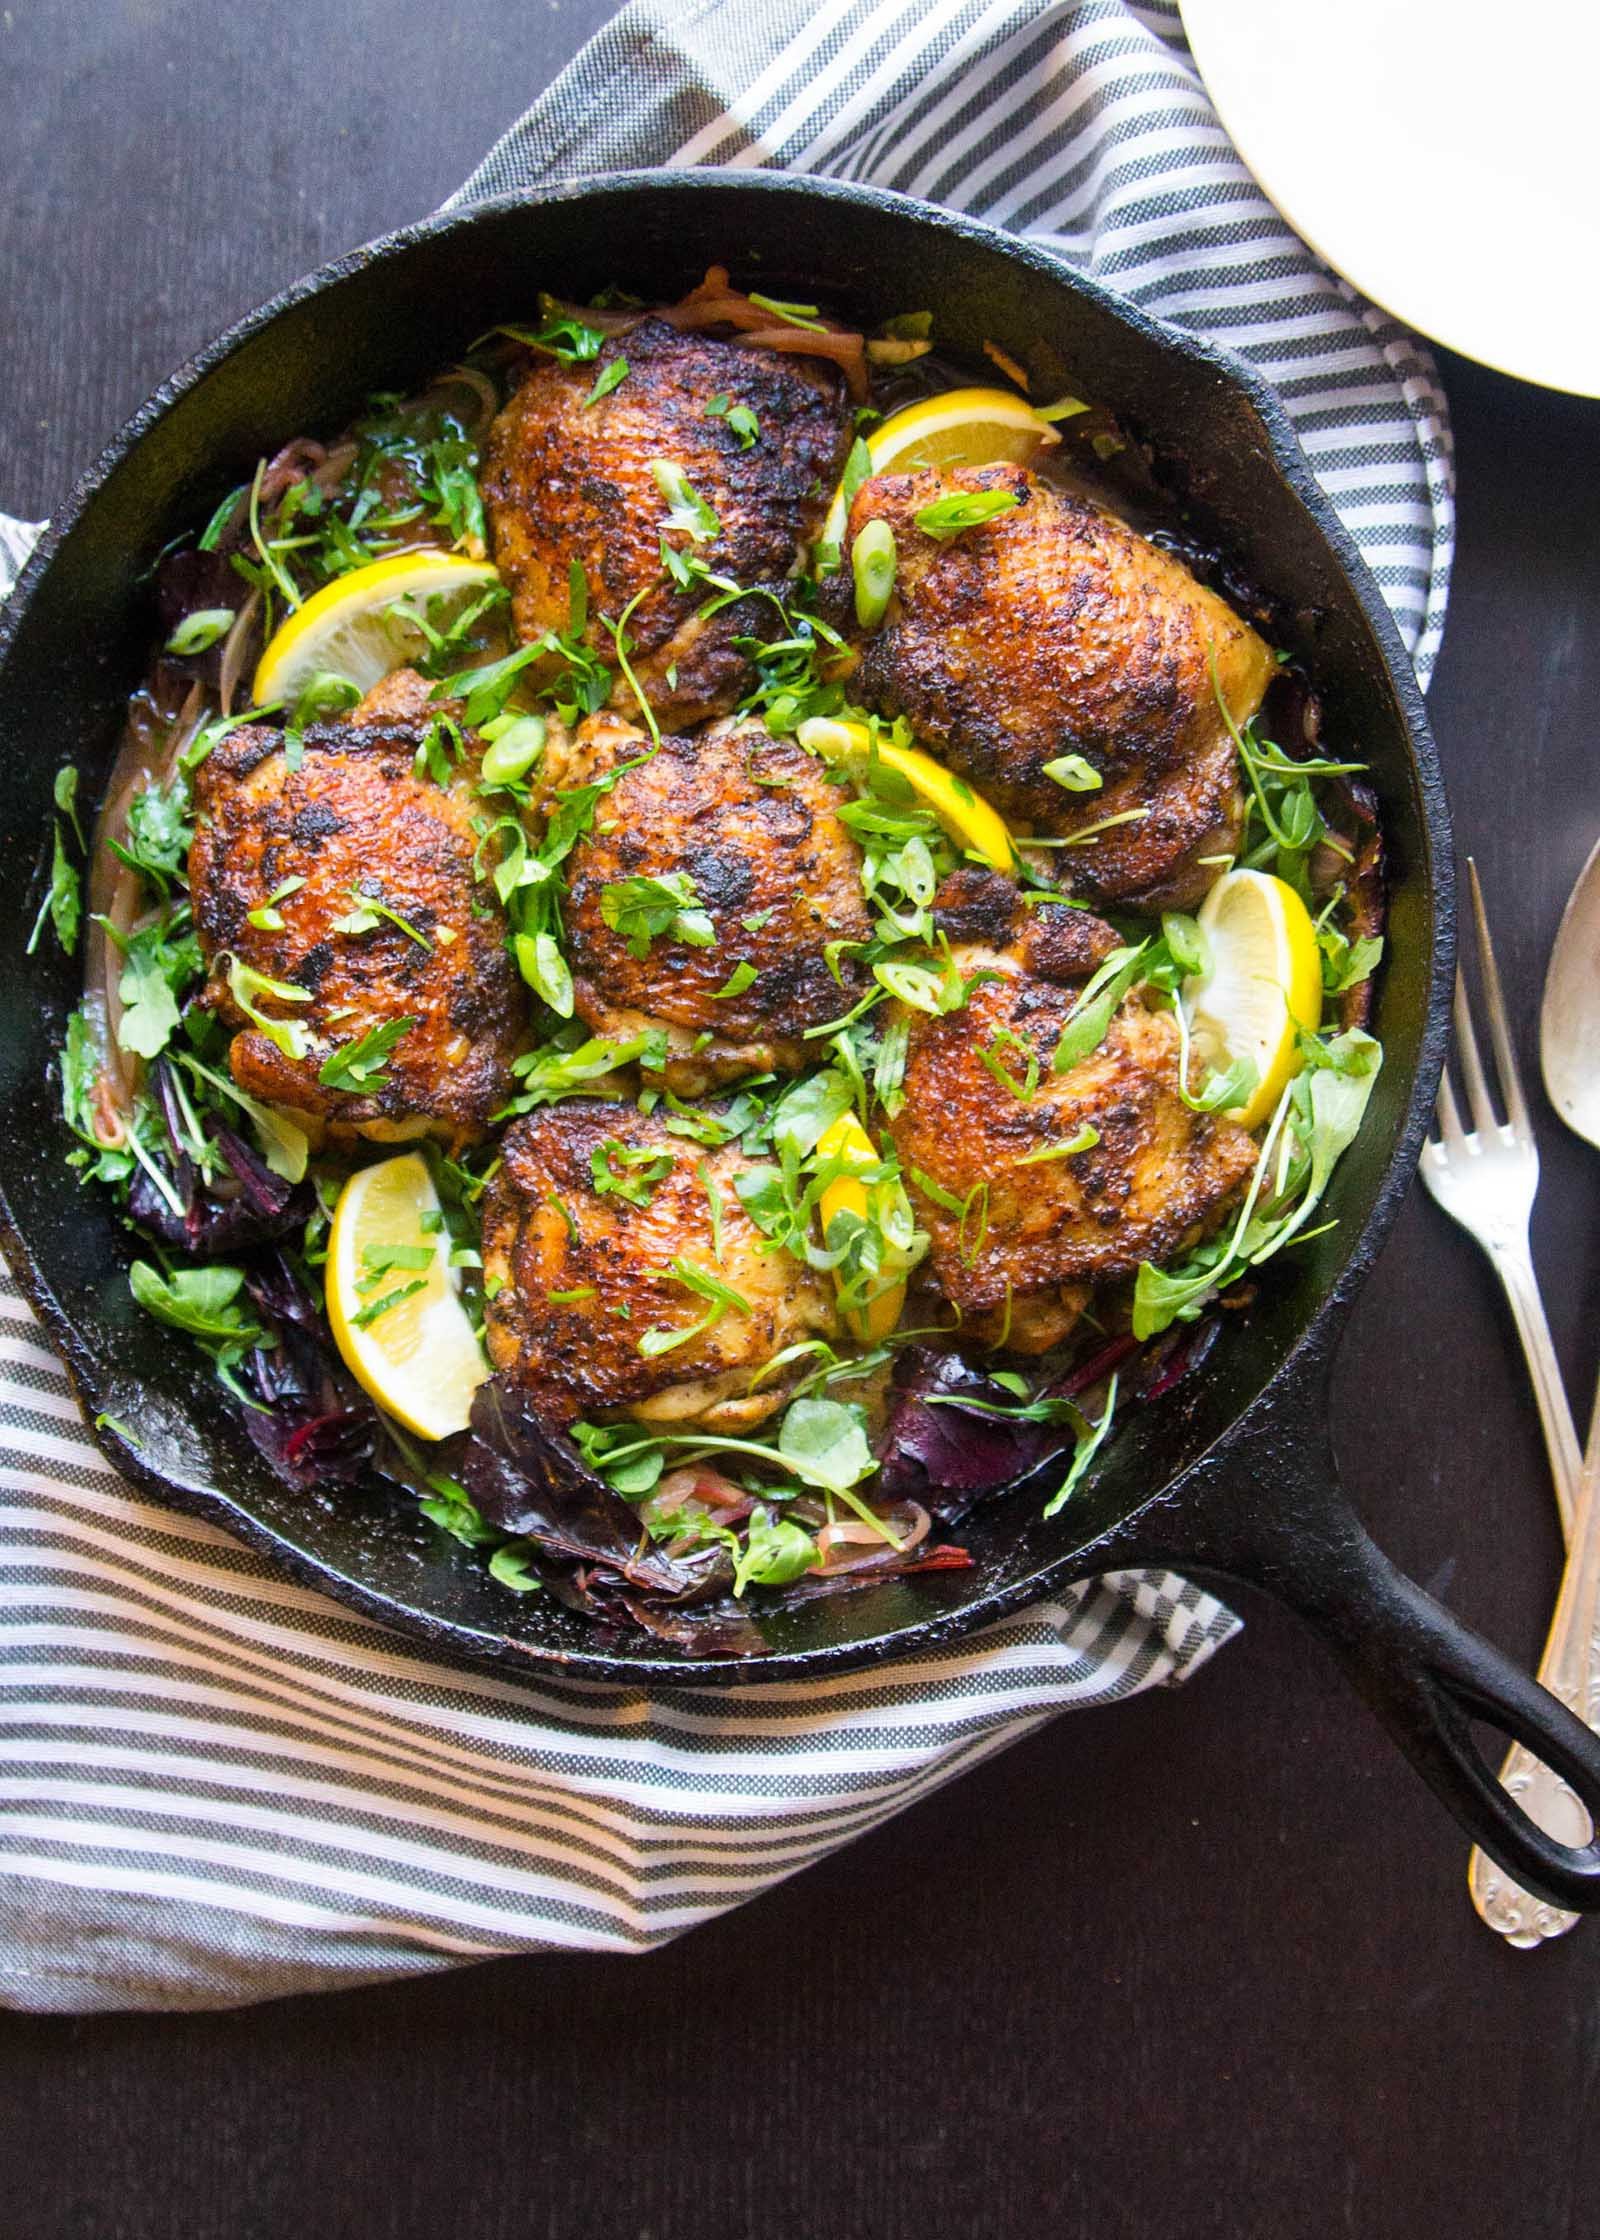 Curried Chicken Thighs  Crispy Curried Chicken Thighs with Wilted Greens Recipe